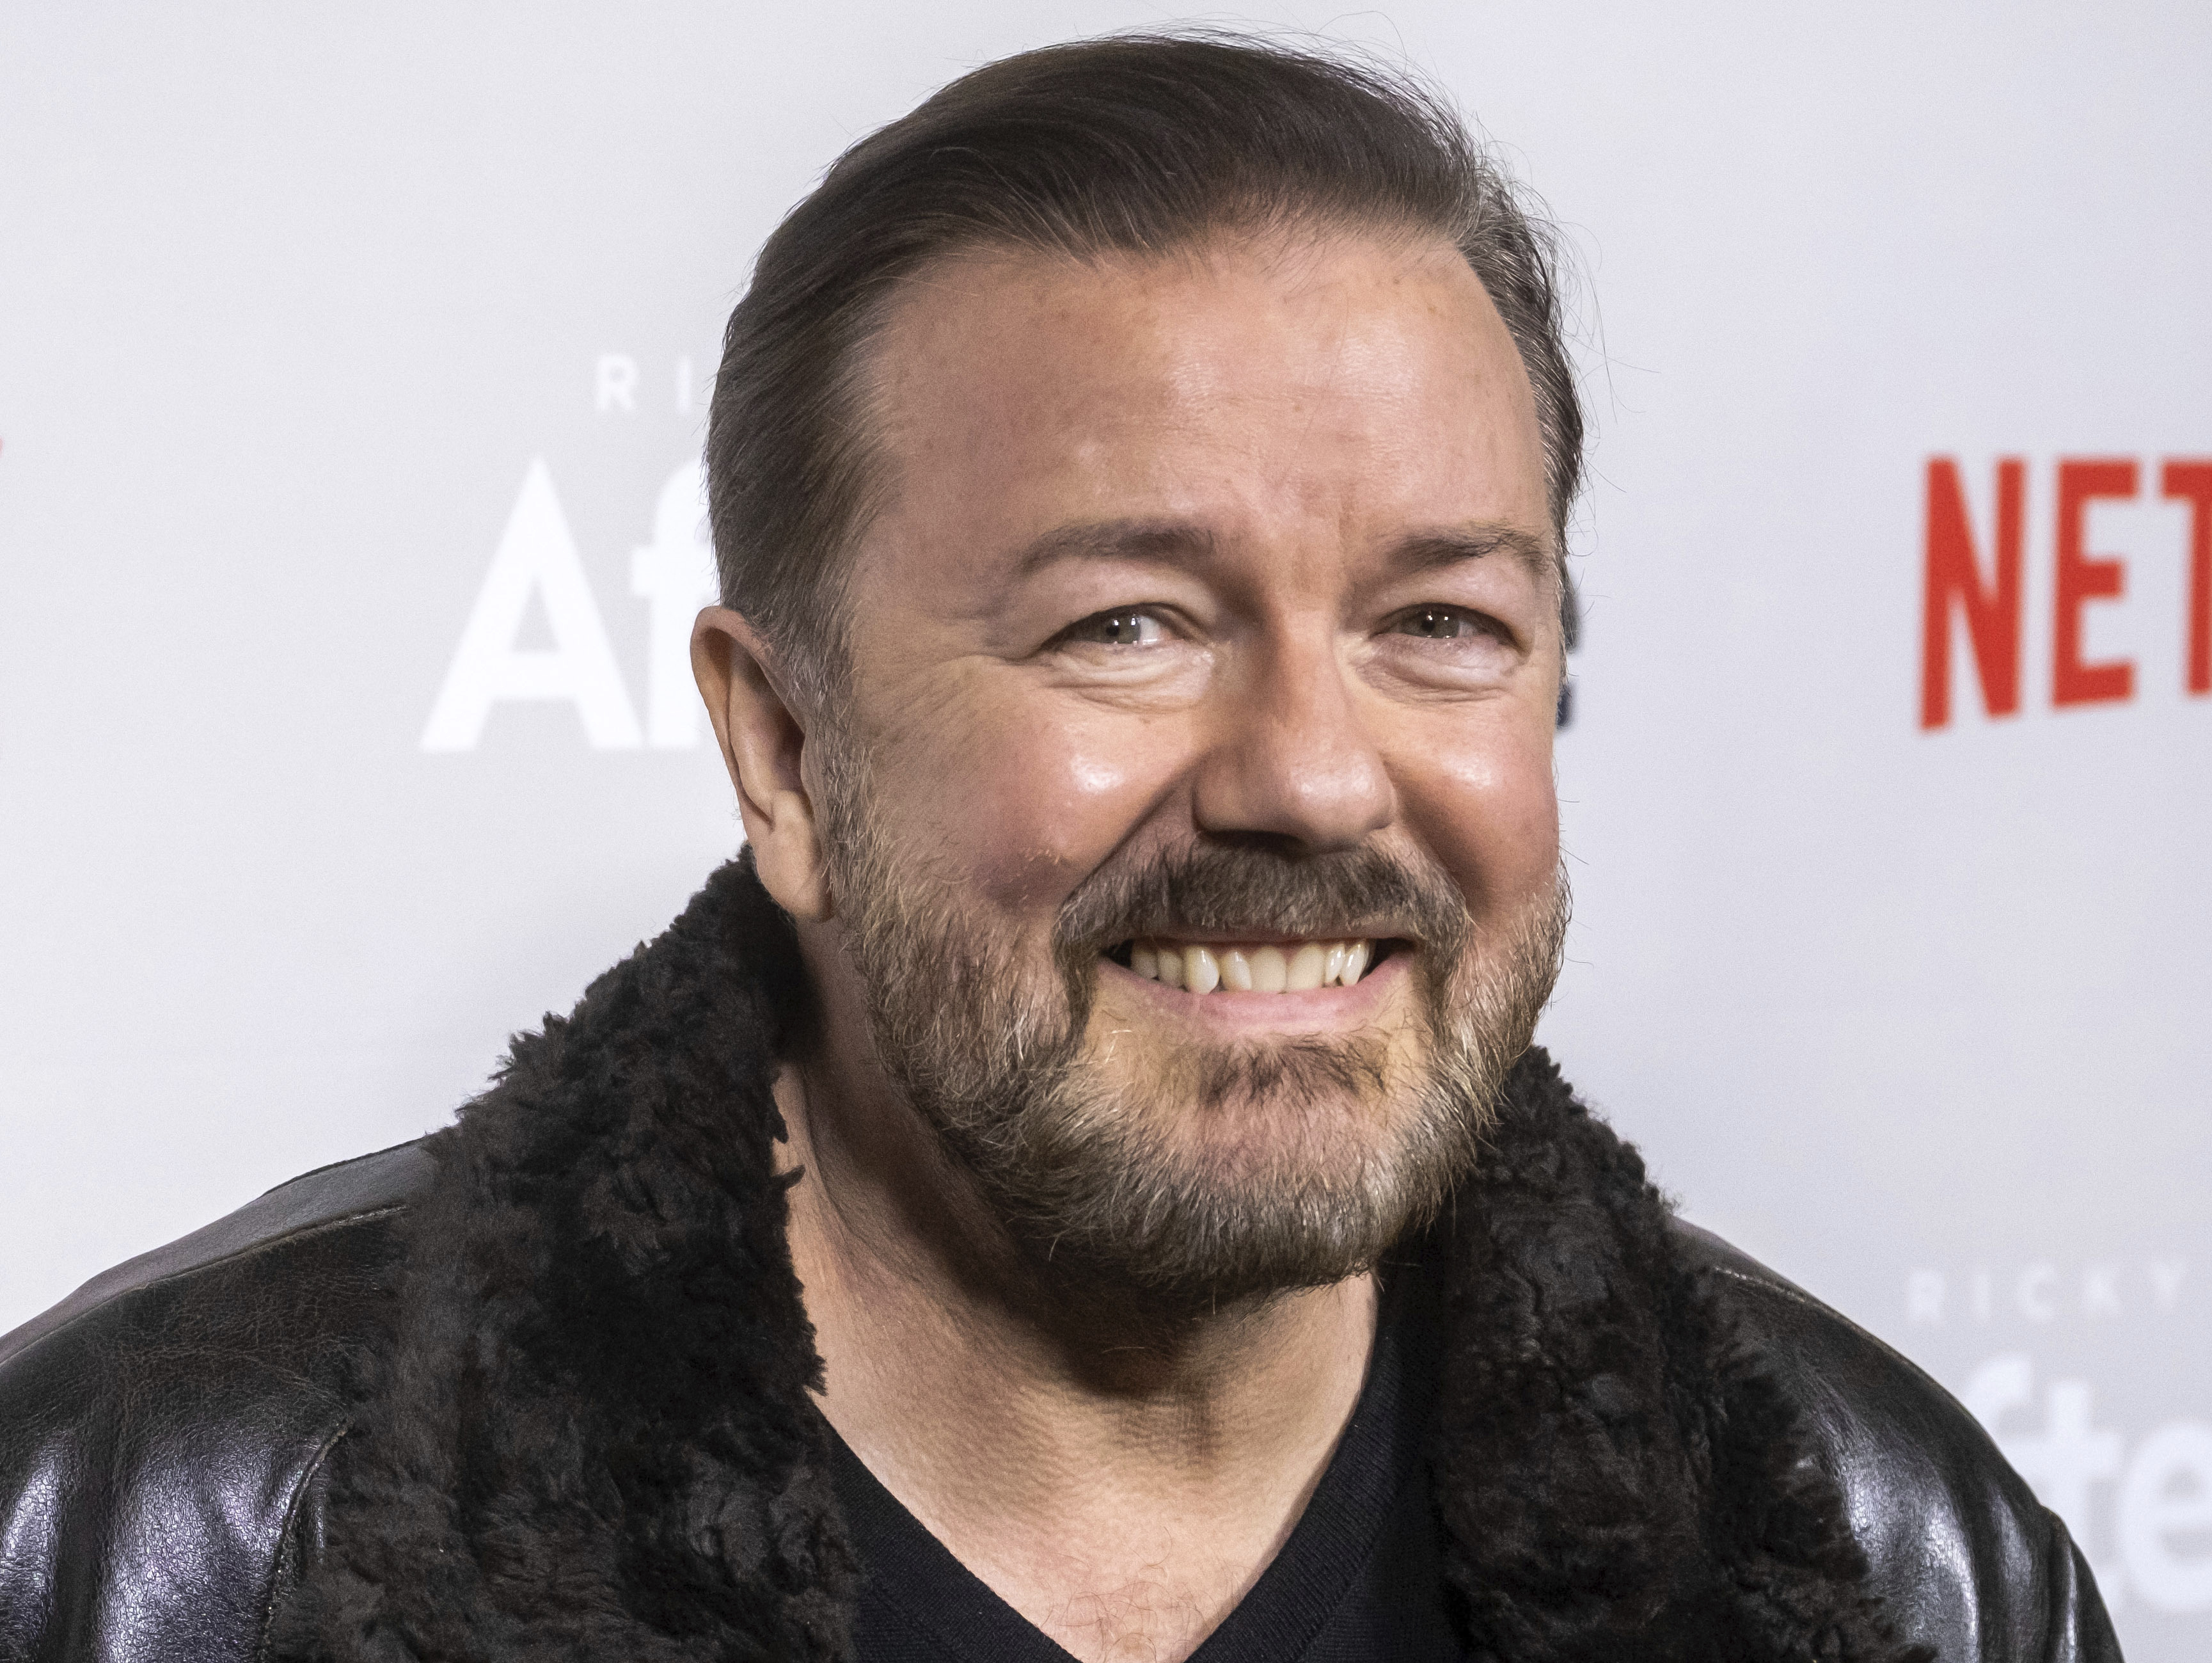 Ricky Gervais is returning to host the Golden Globe Awards, which will be held at the Beverly Hilton Hotel on Jan. 5, 2020, and aired live on NBC.